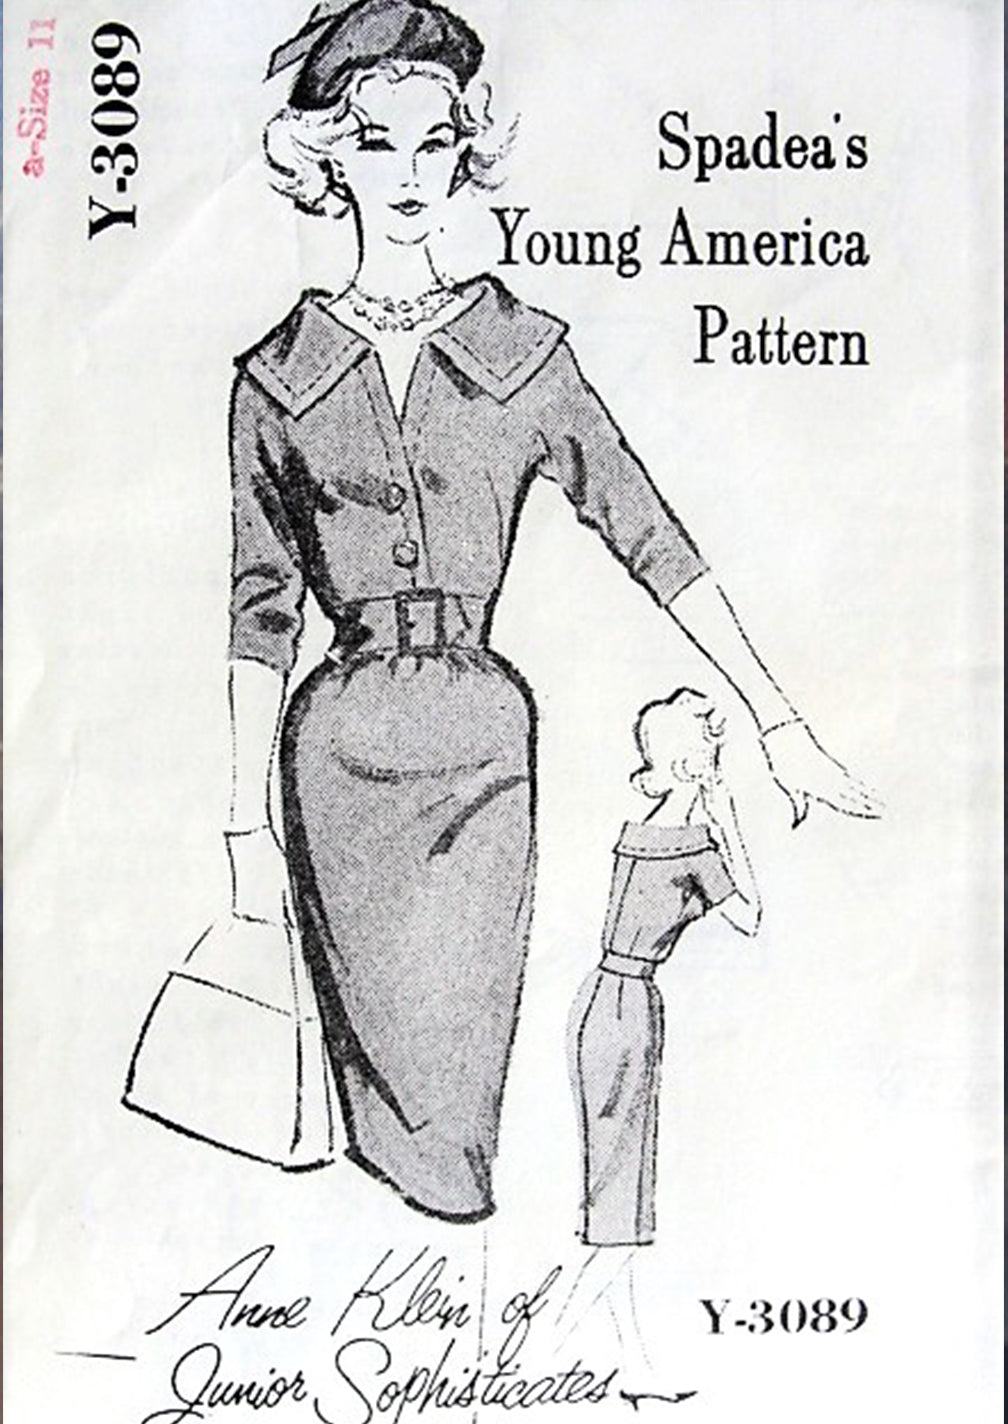 Spadea's Young America Pattern Anne Klein of Junior Sophisticates